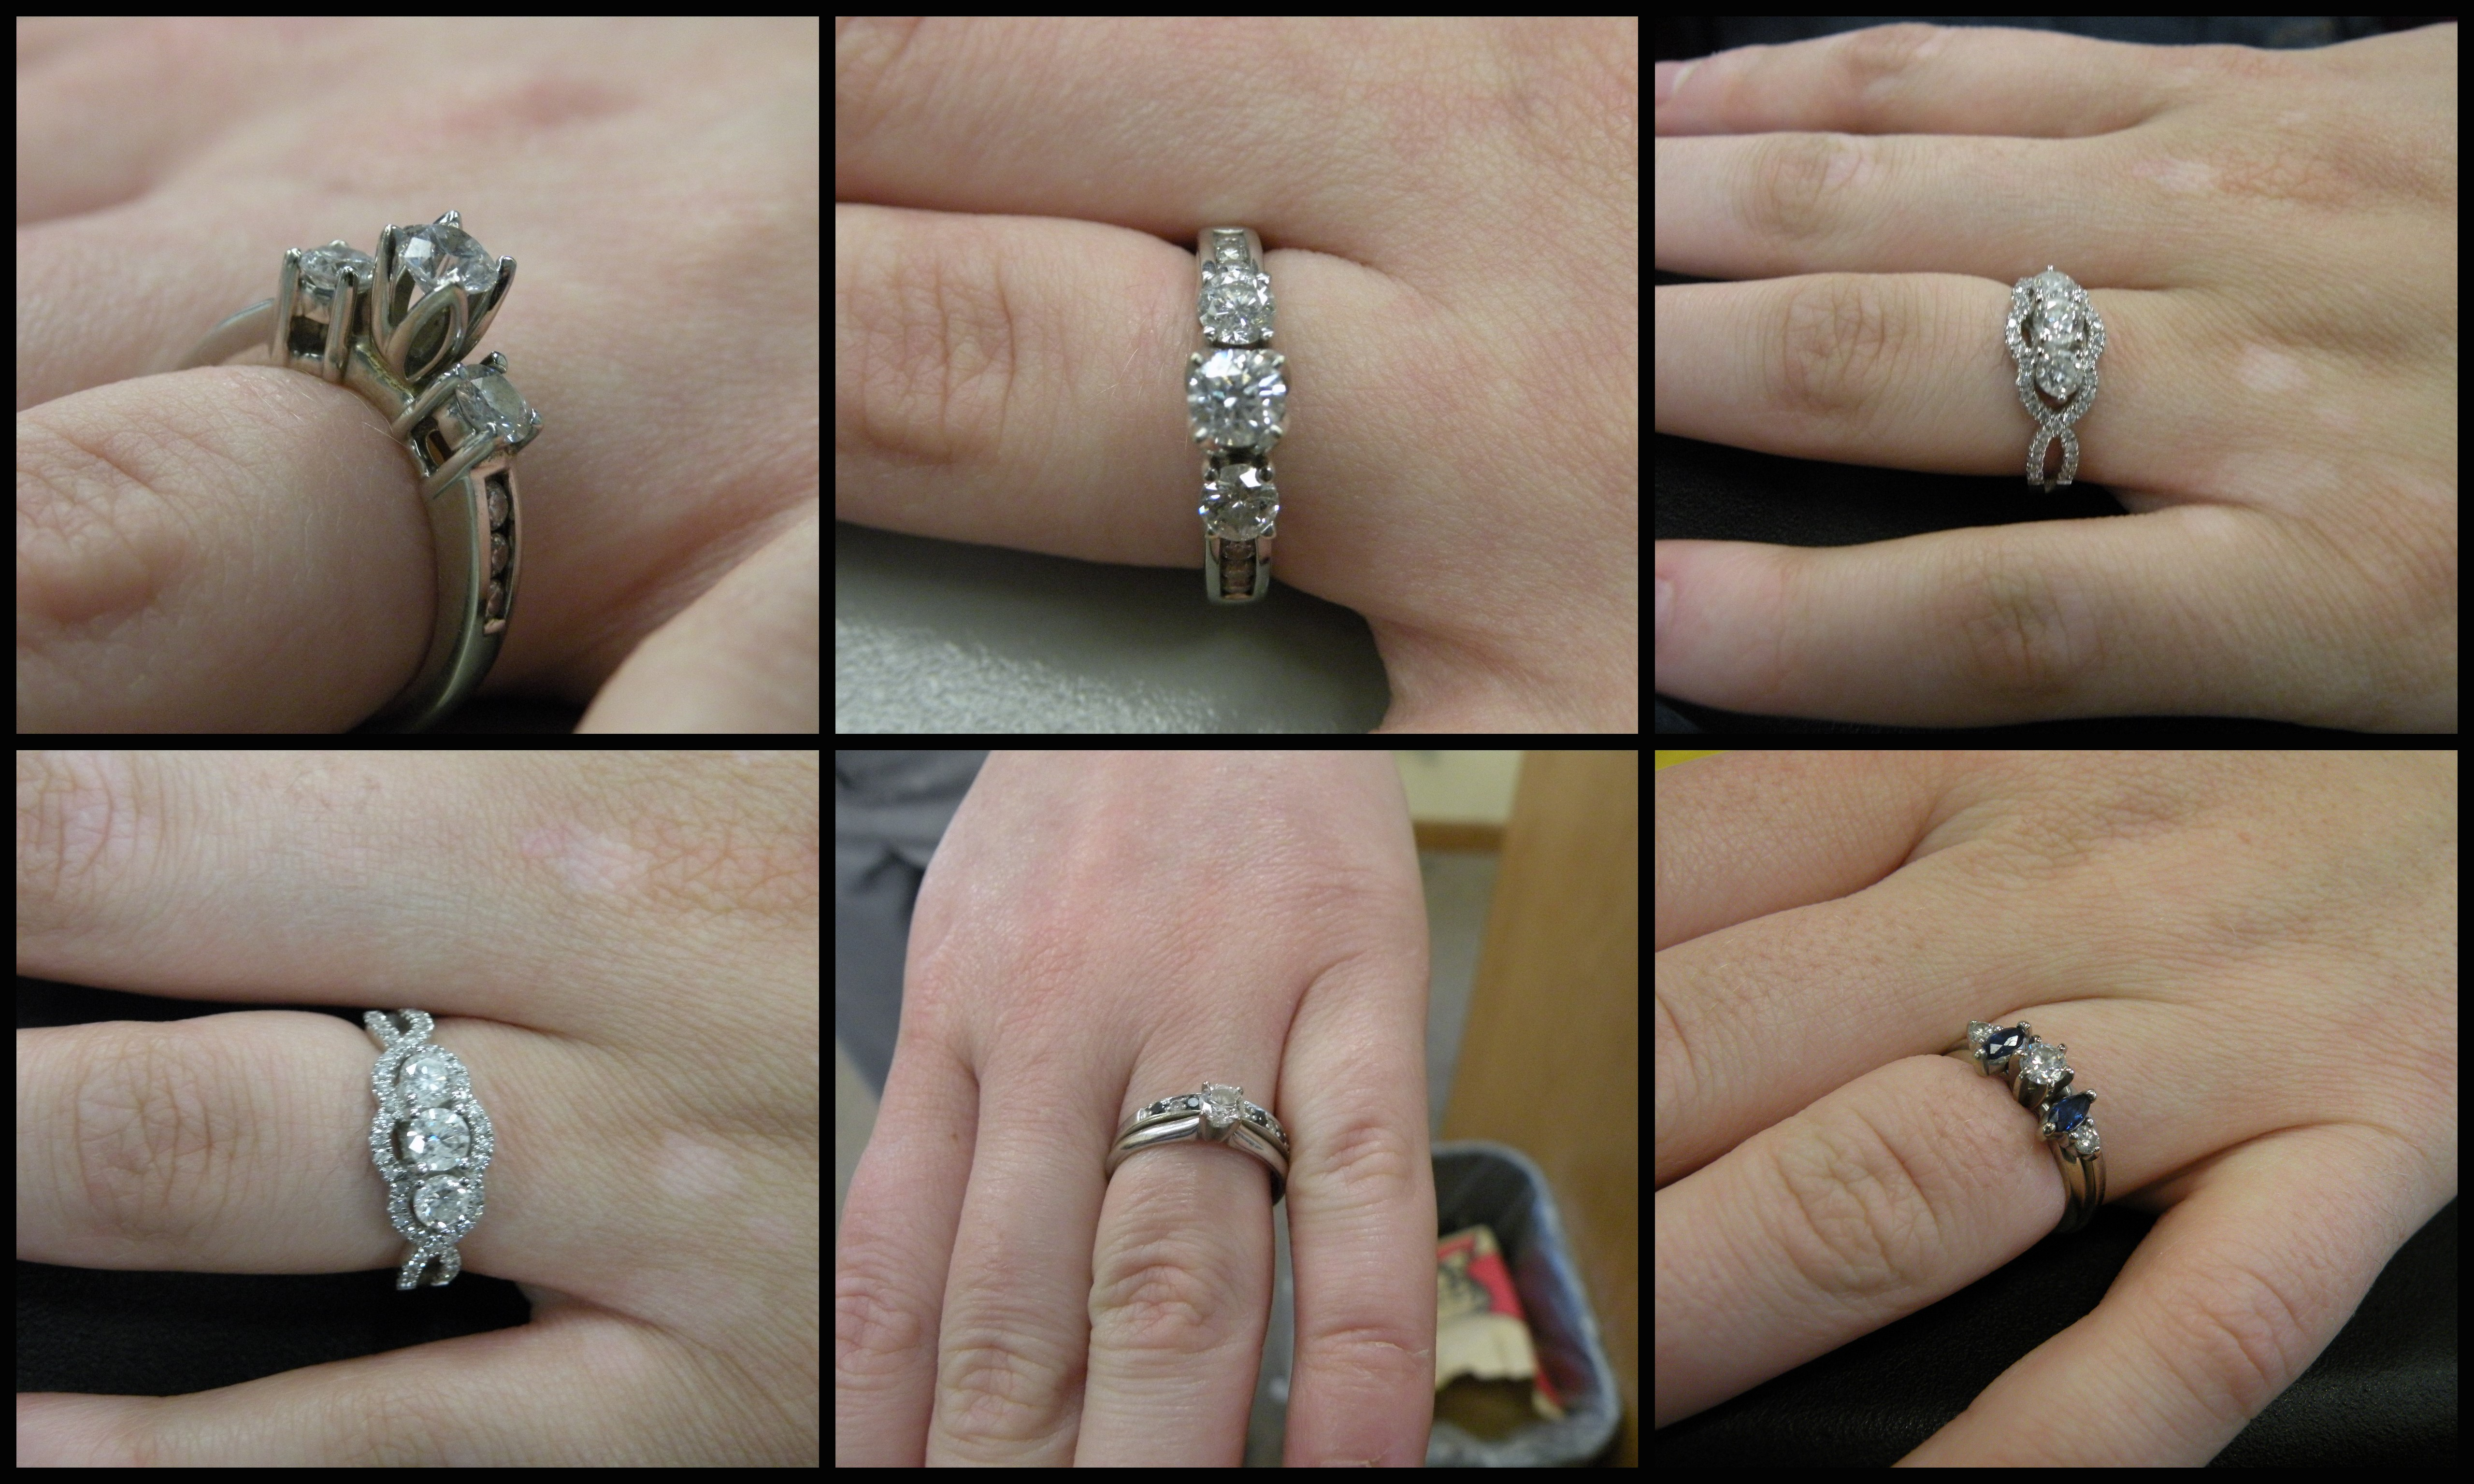 symptoms of the engagement - Walmart Jewelry Wedding Rings